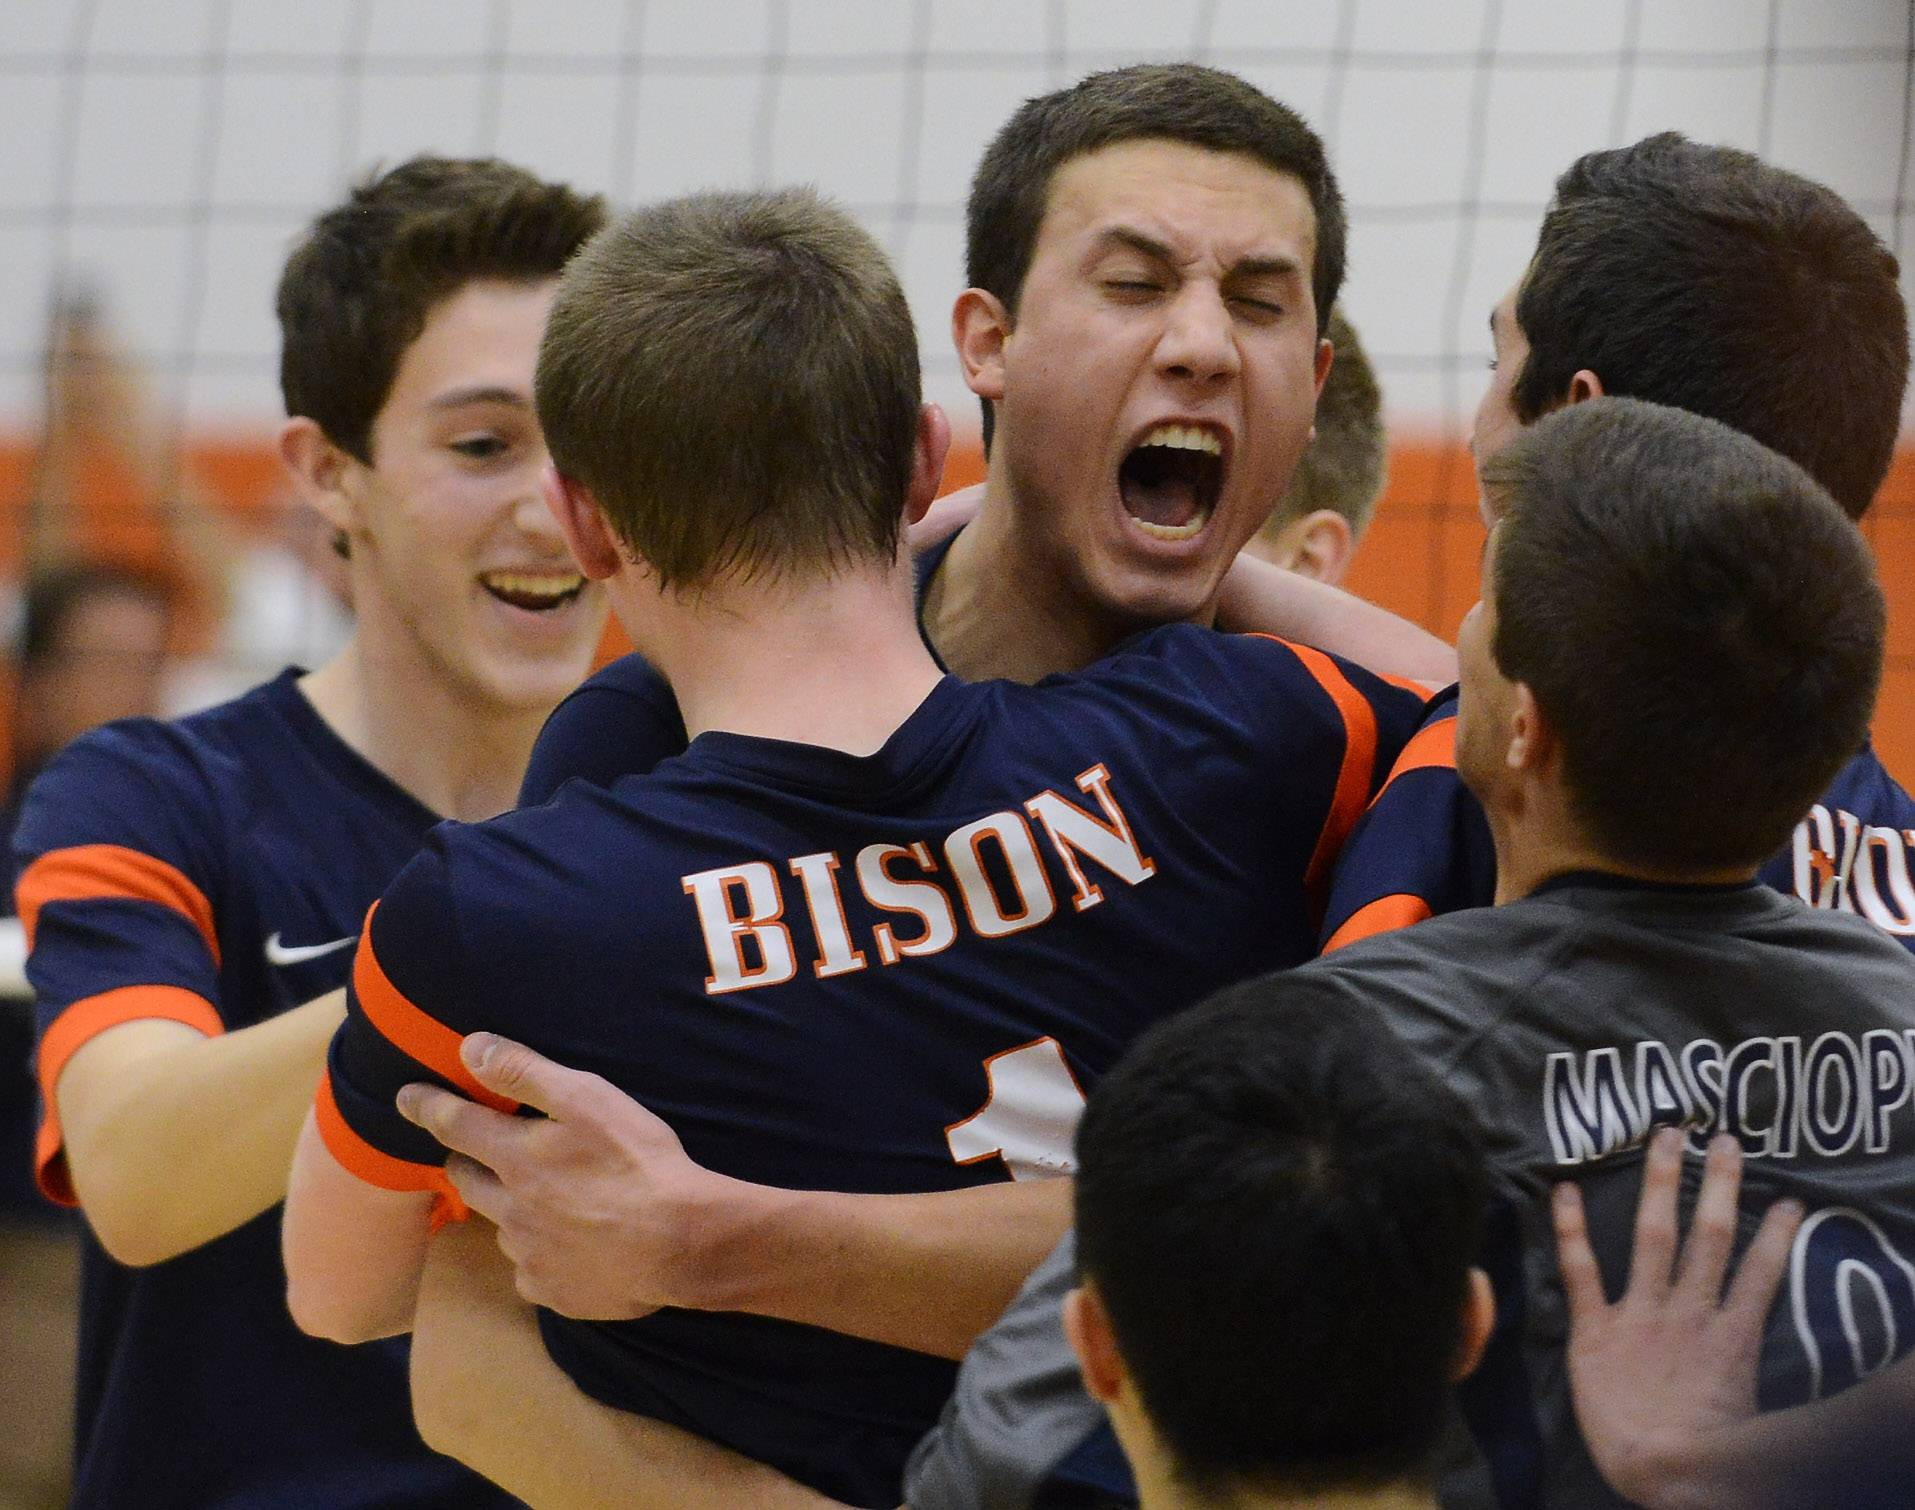 Buffalo Grove's Brendan Ward, left, and Athan Cruz, middle, facing camera, hug teammate Kevin Shanahan, after the Bison defeated Barrington during Wednesday's match.